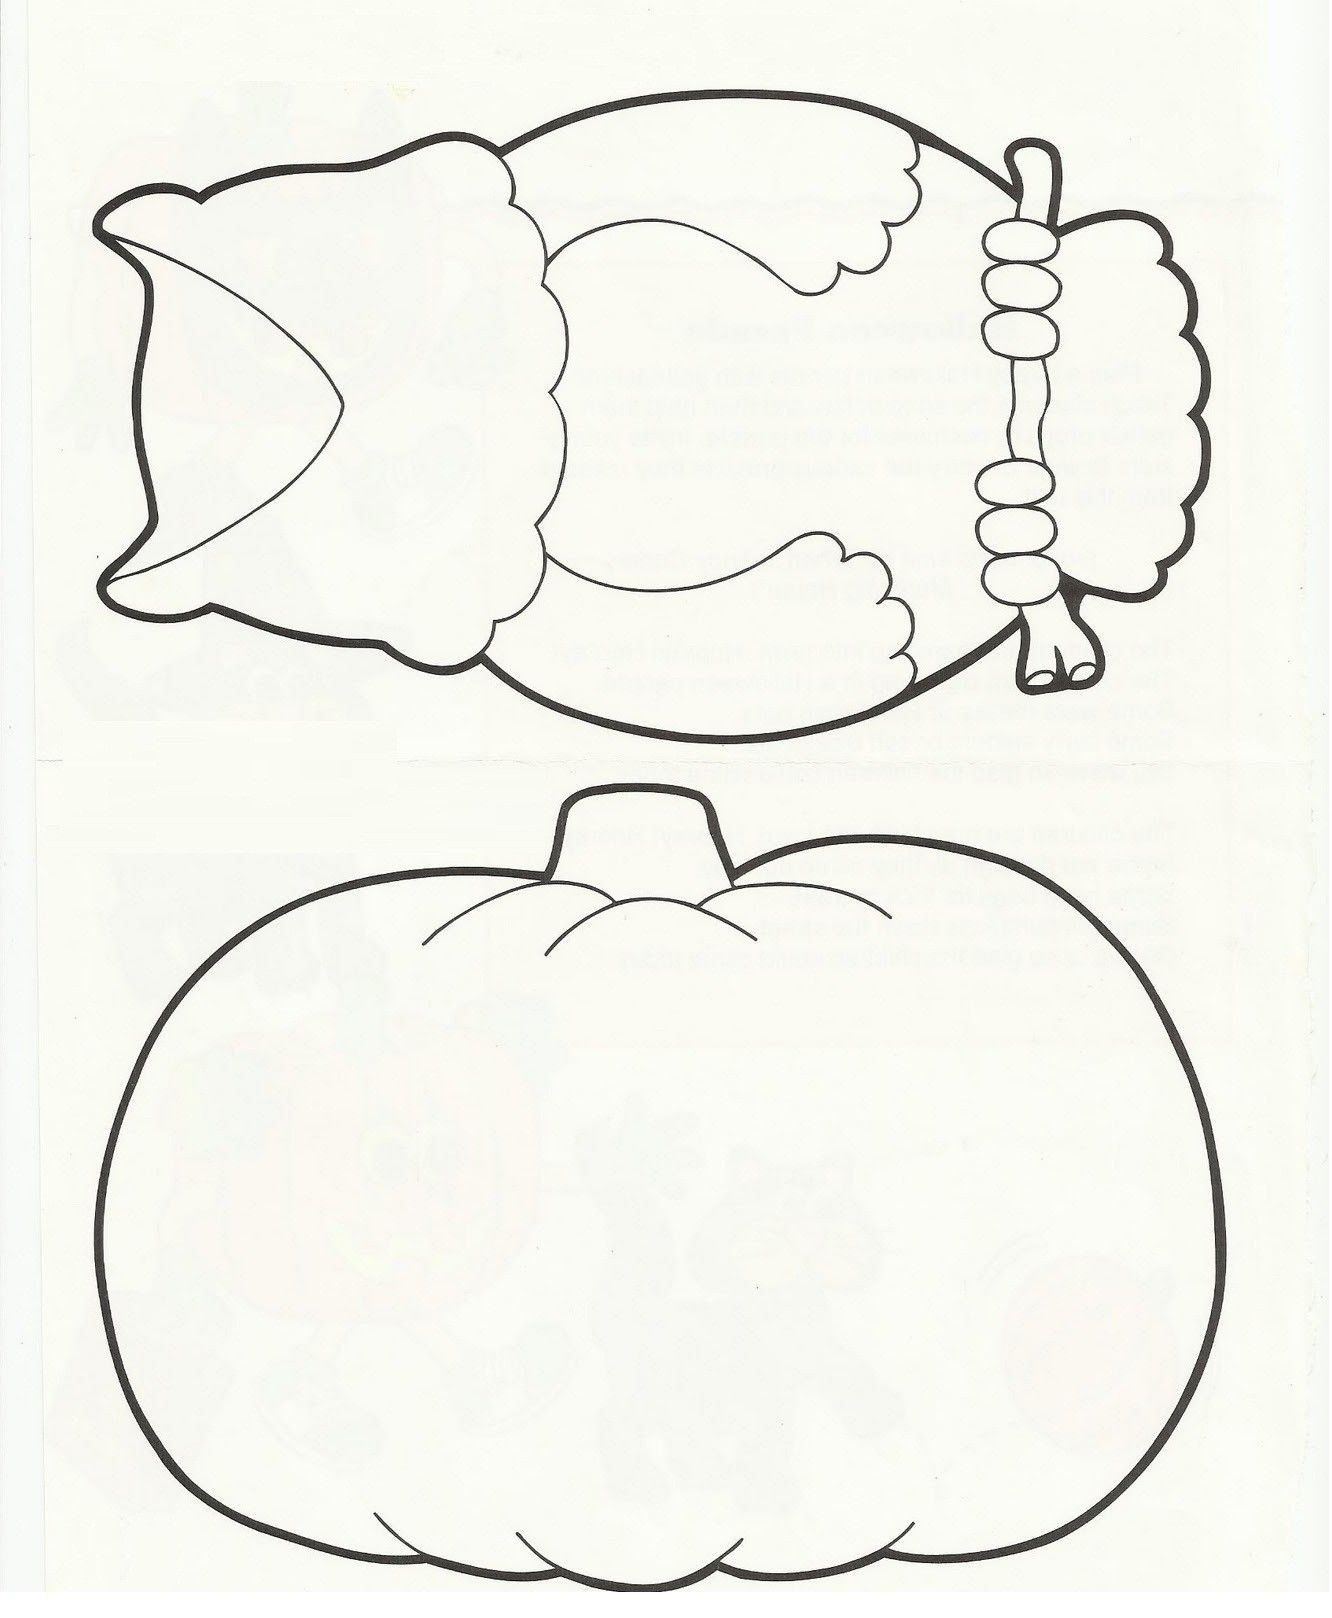 Printable Pumpkin Coloring Pages Fill In The Jack O